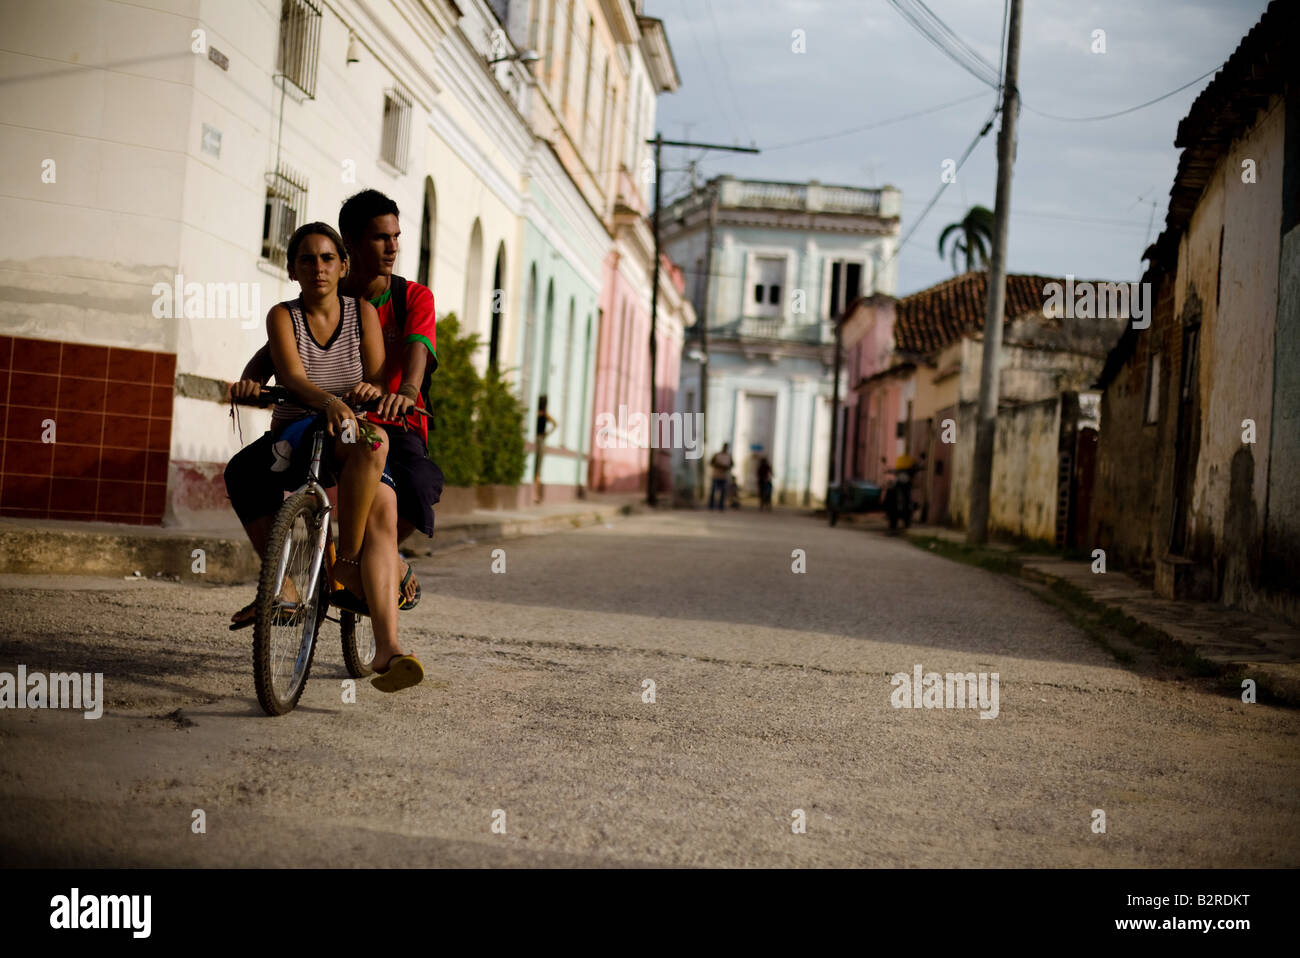 Couple of teenagers riding a bicycle in Remedios, Cuba - Stock Image